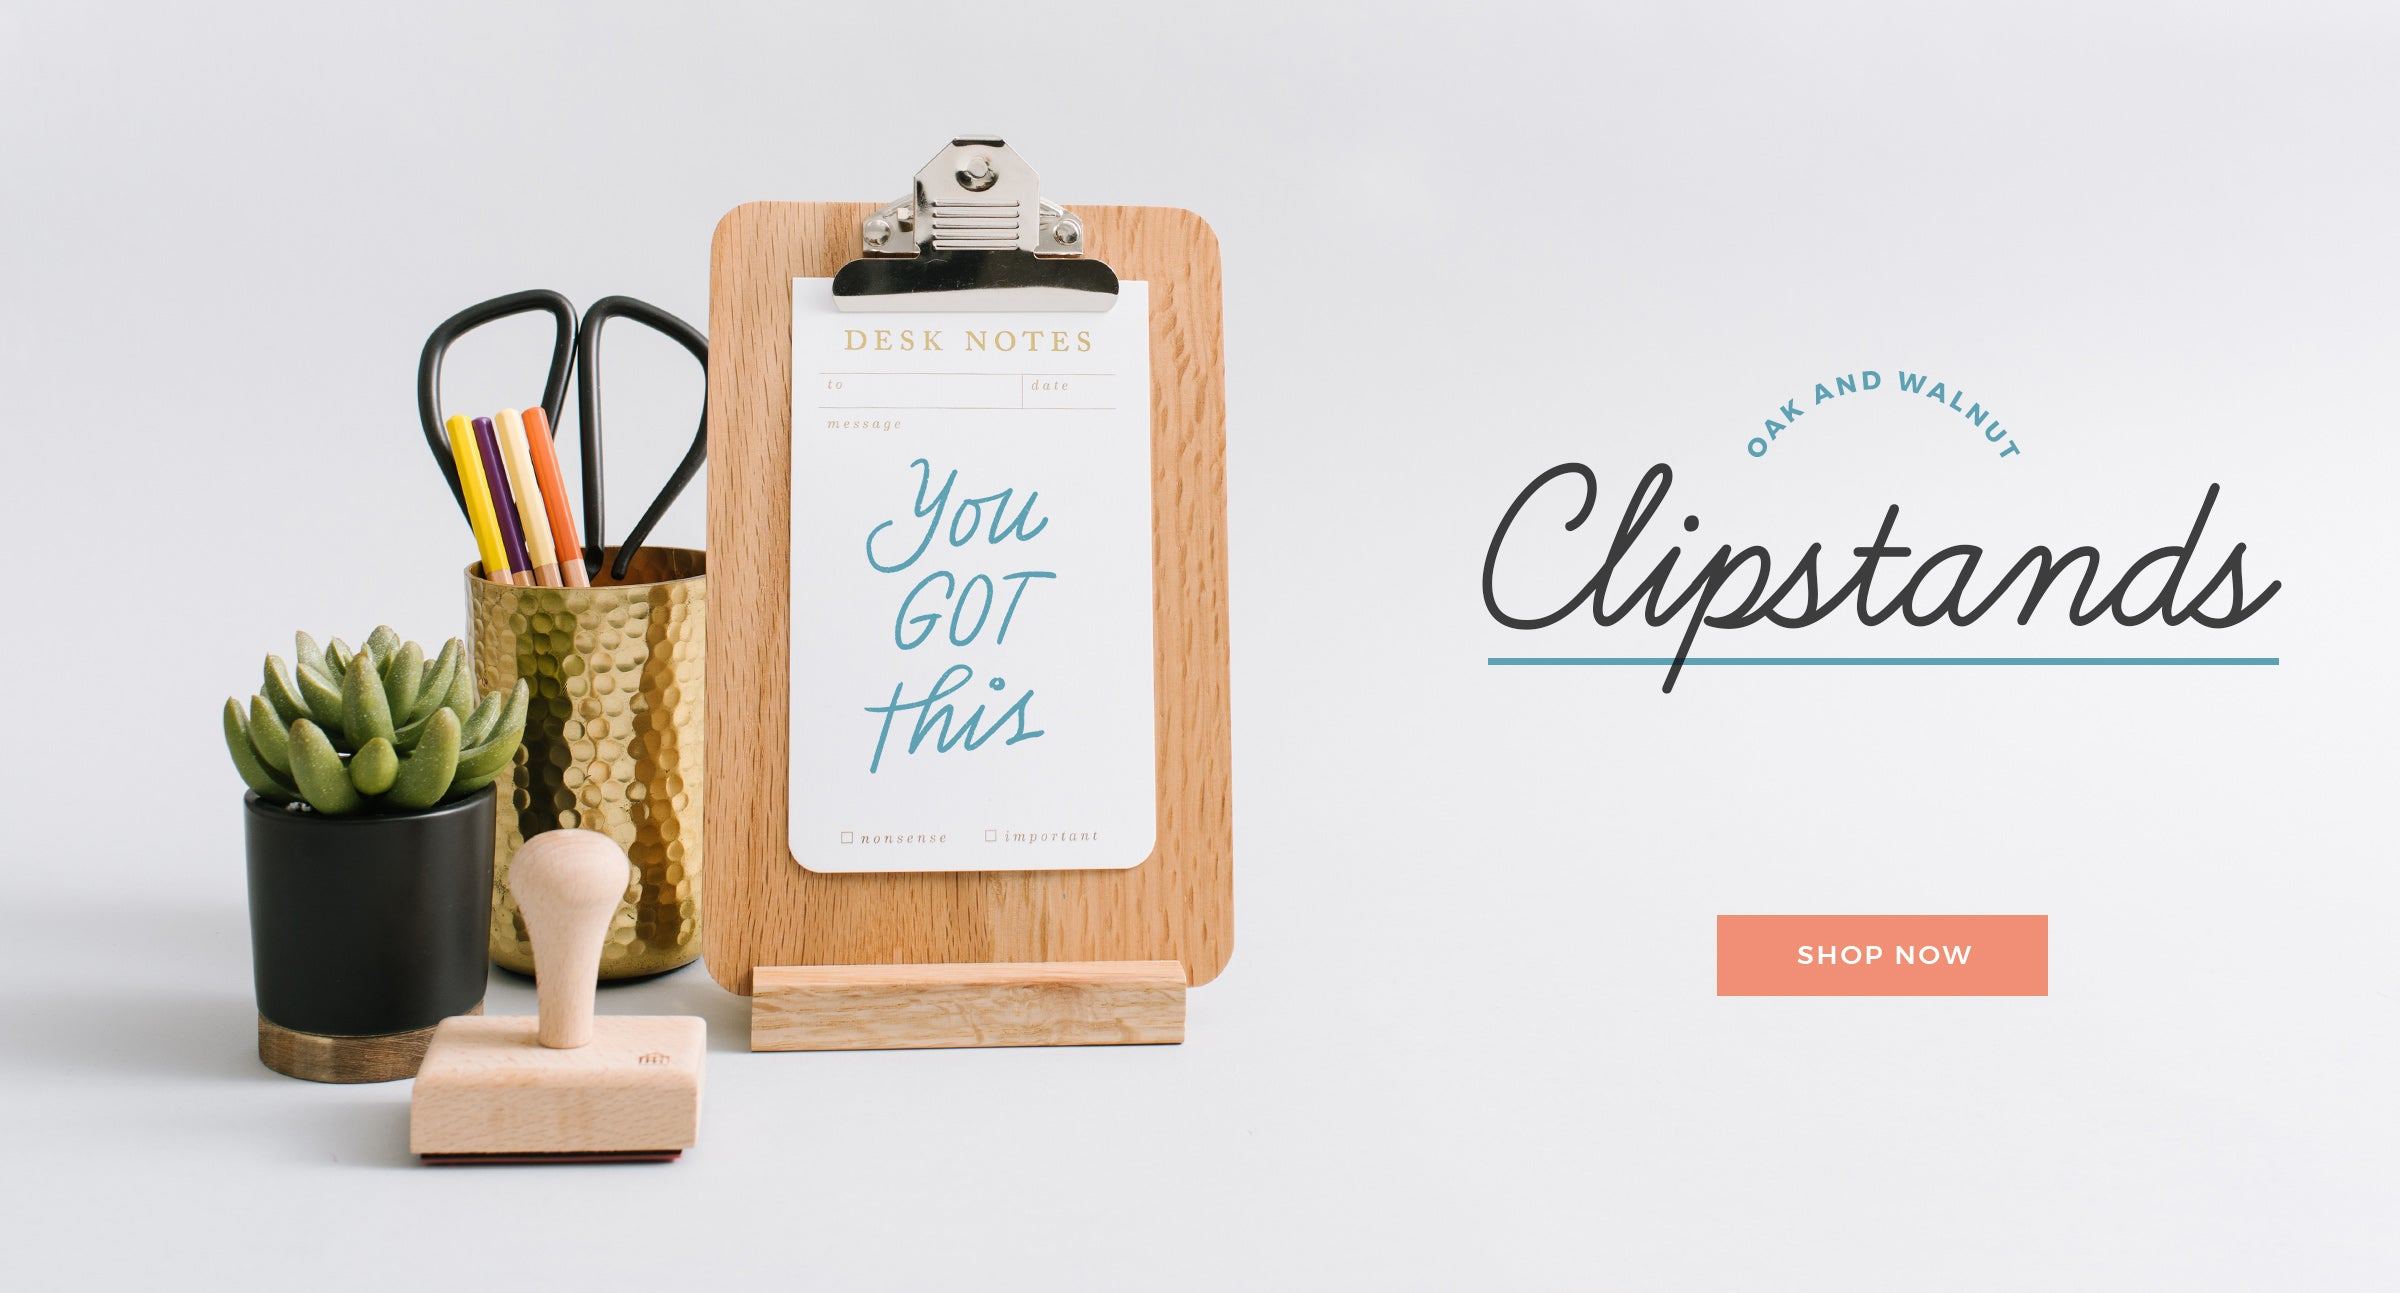 Clipstands by Letterfolk